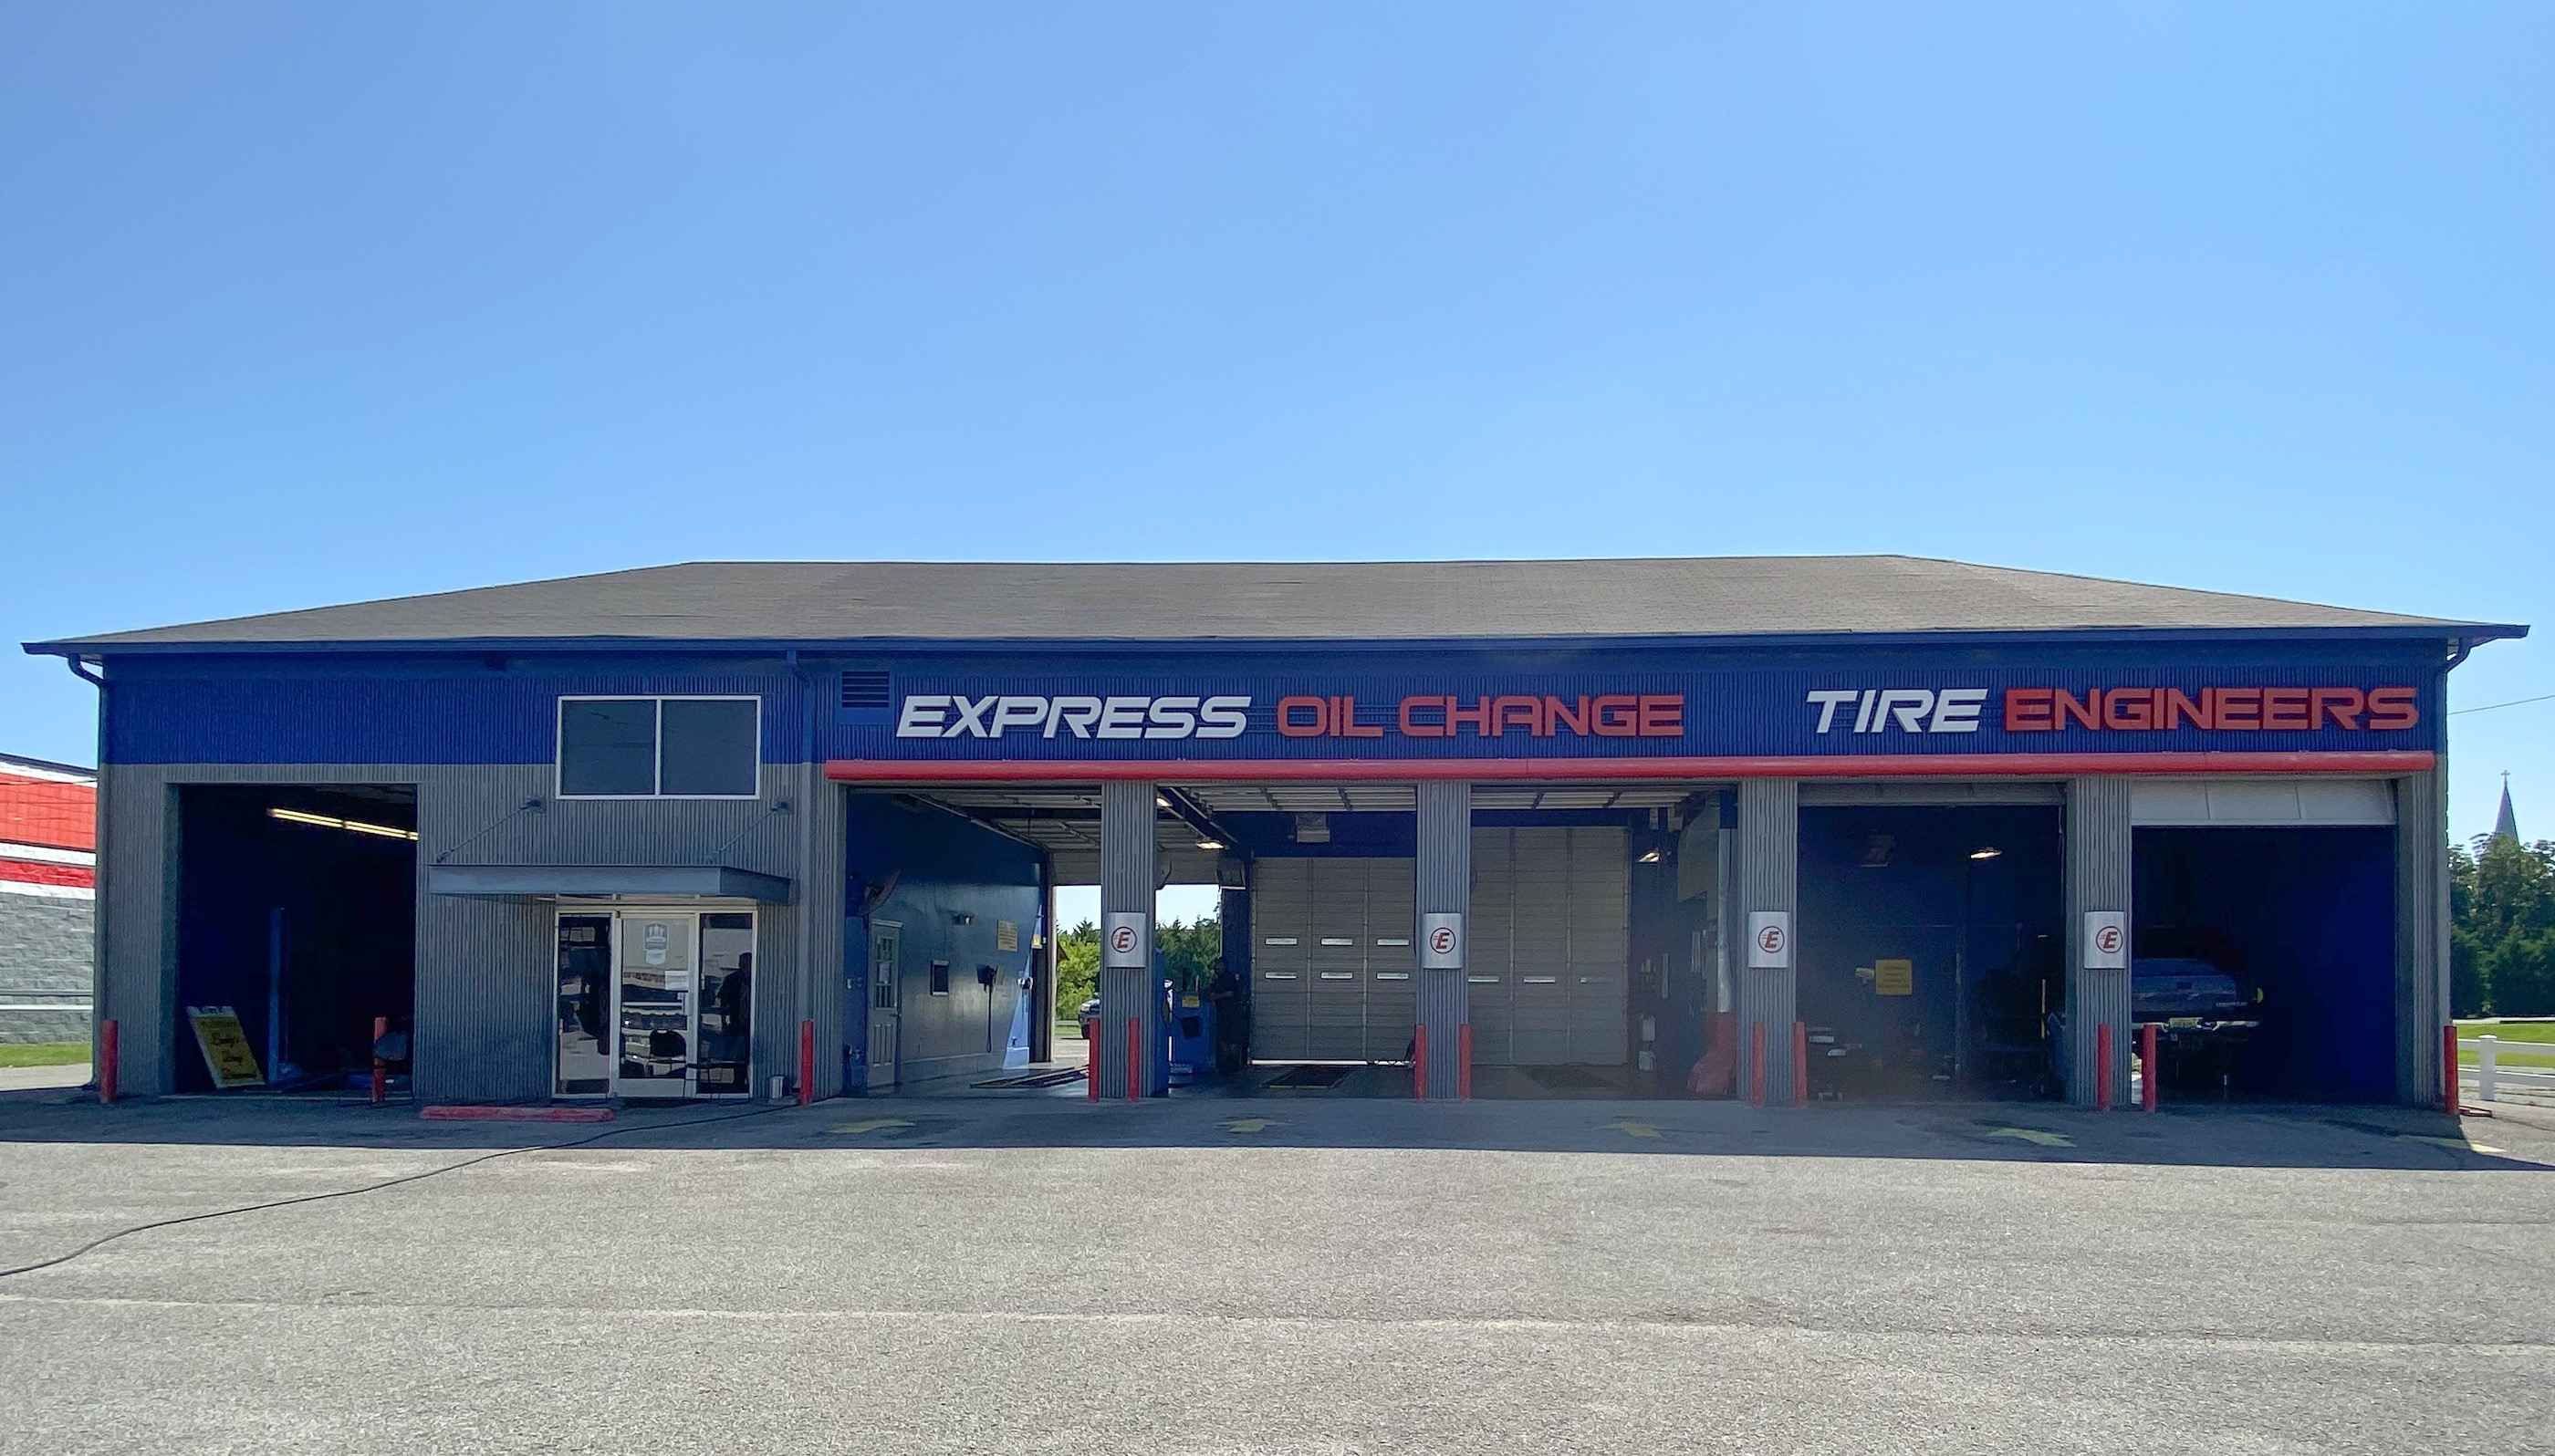 Express Oil Change & Tire Engineers Cullman, AL - Midtown store